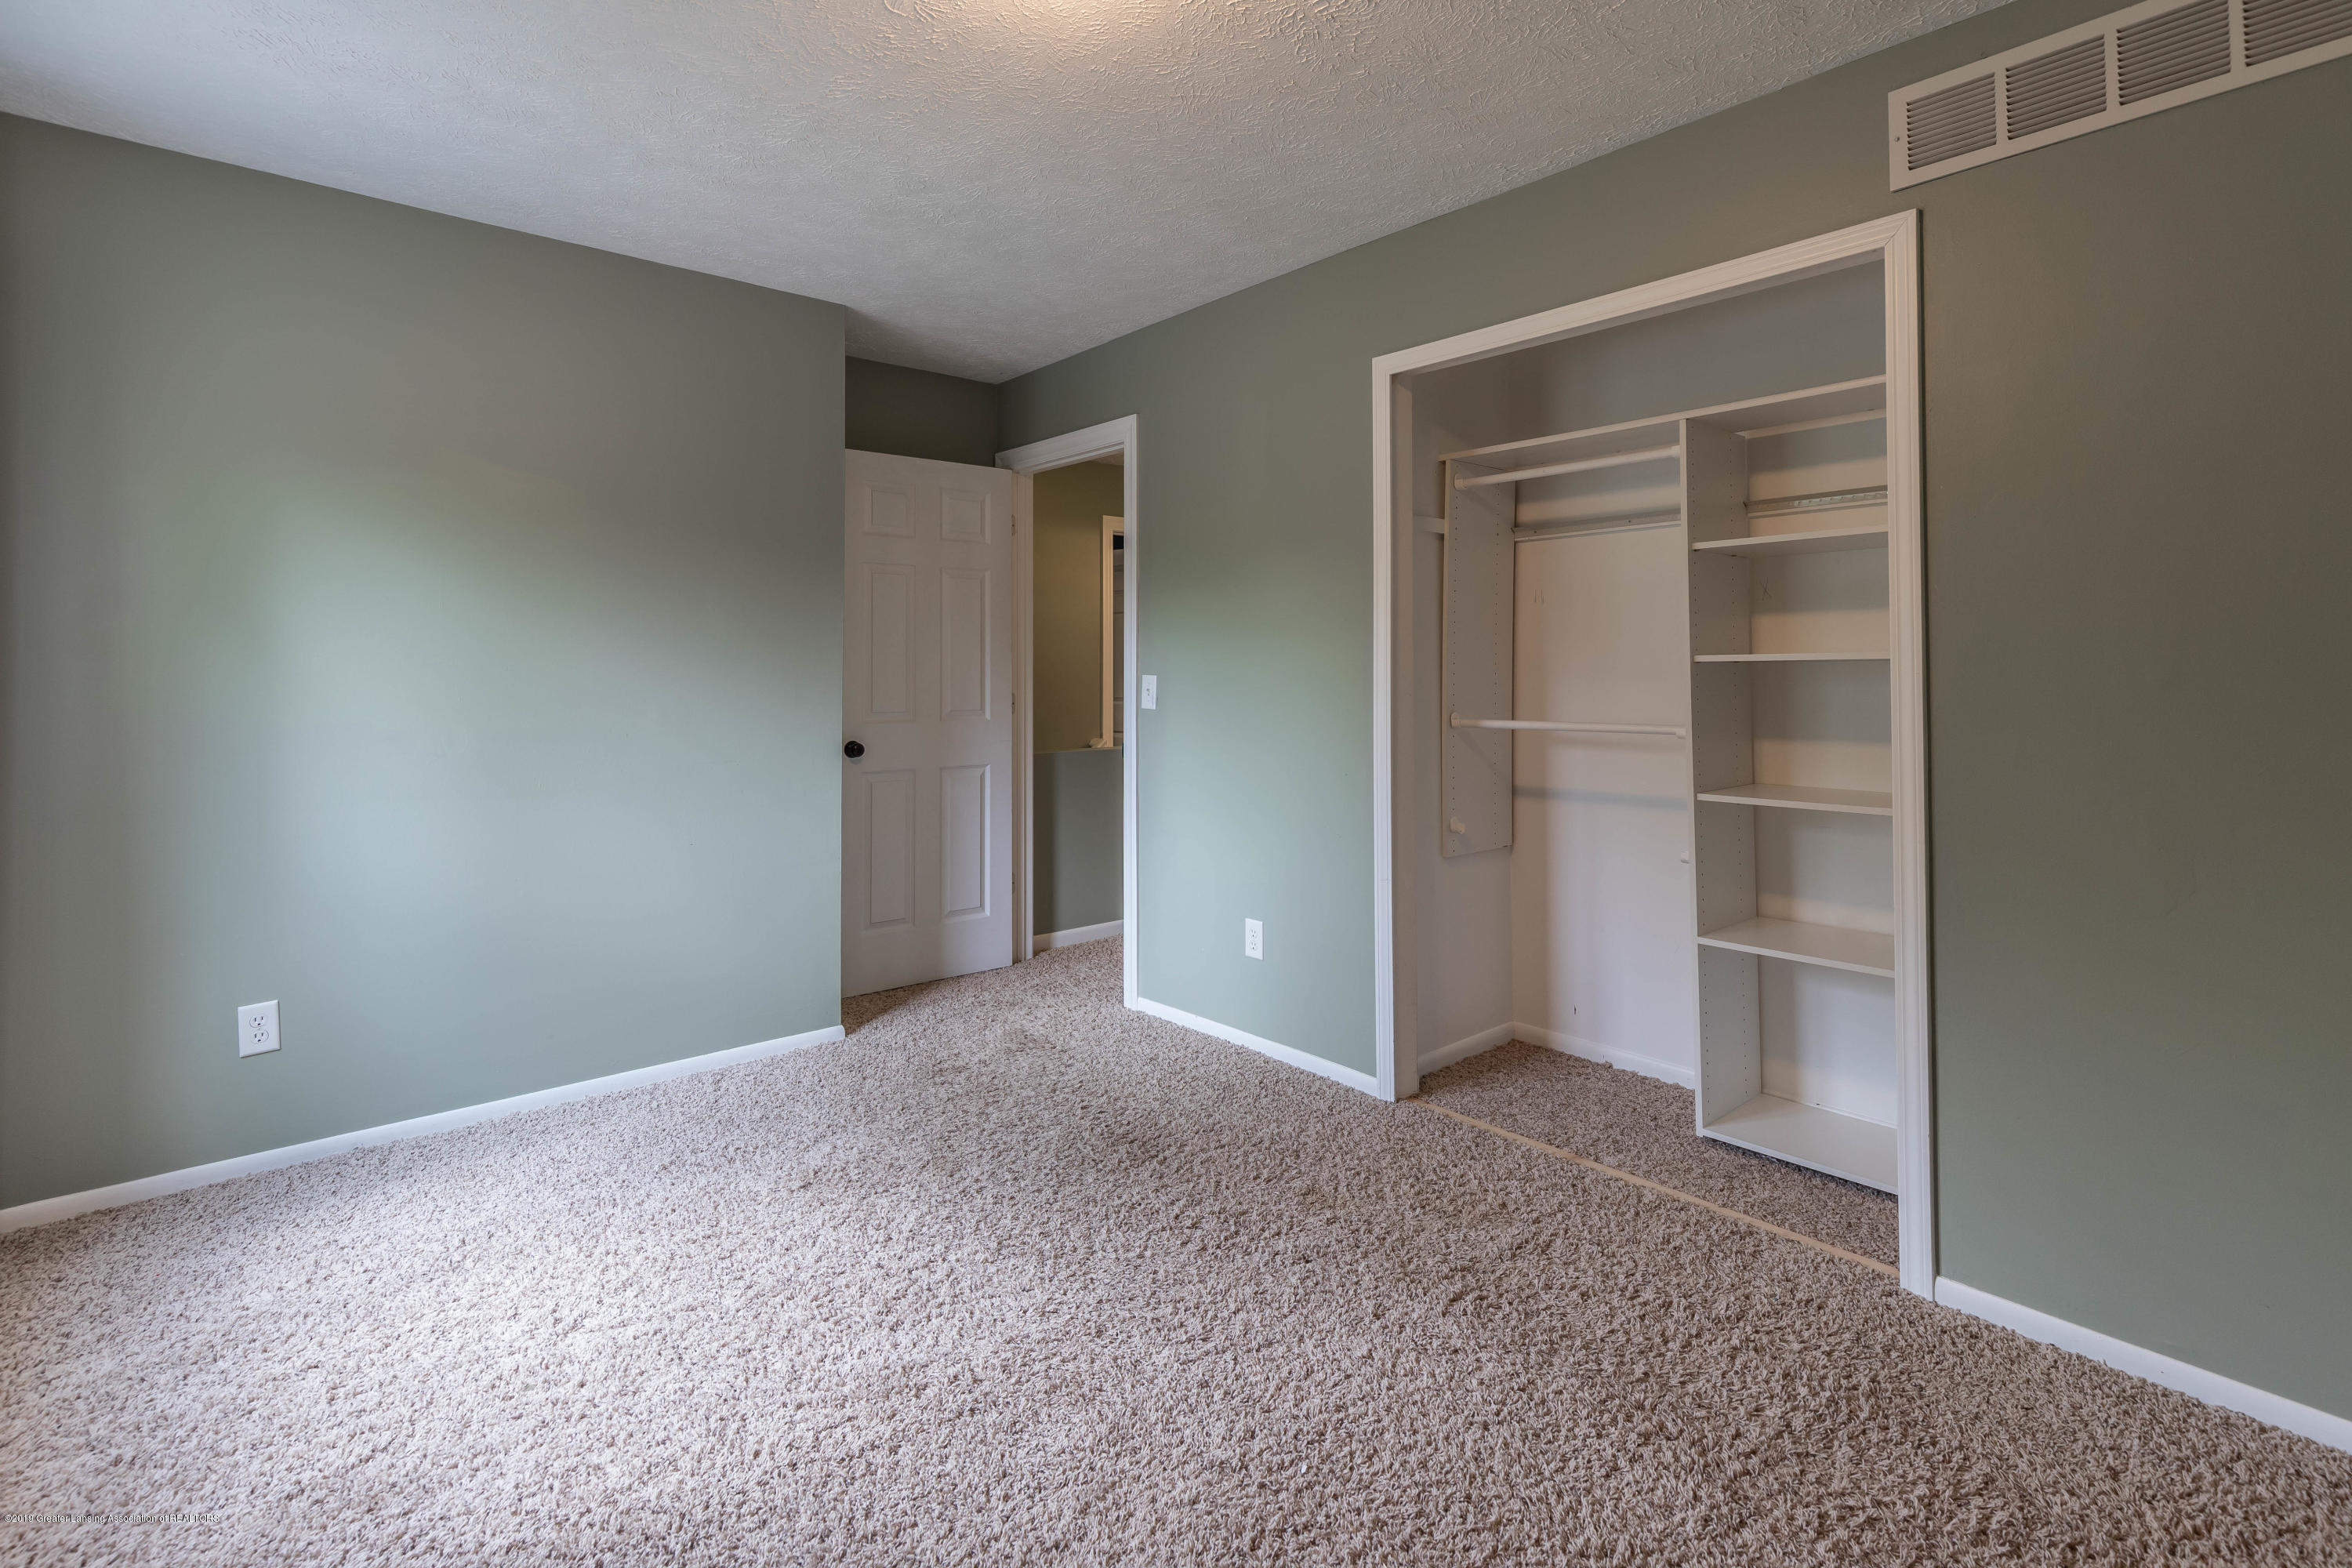 2497 Graystone Dr - 18. Large BR Closets - 21